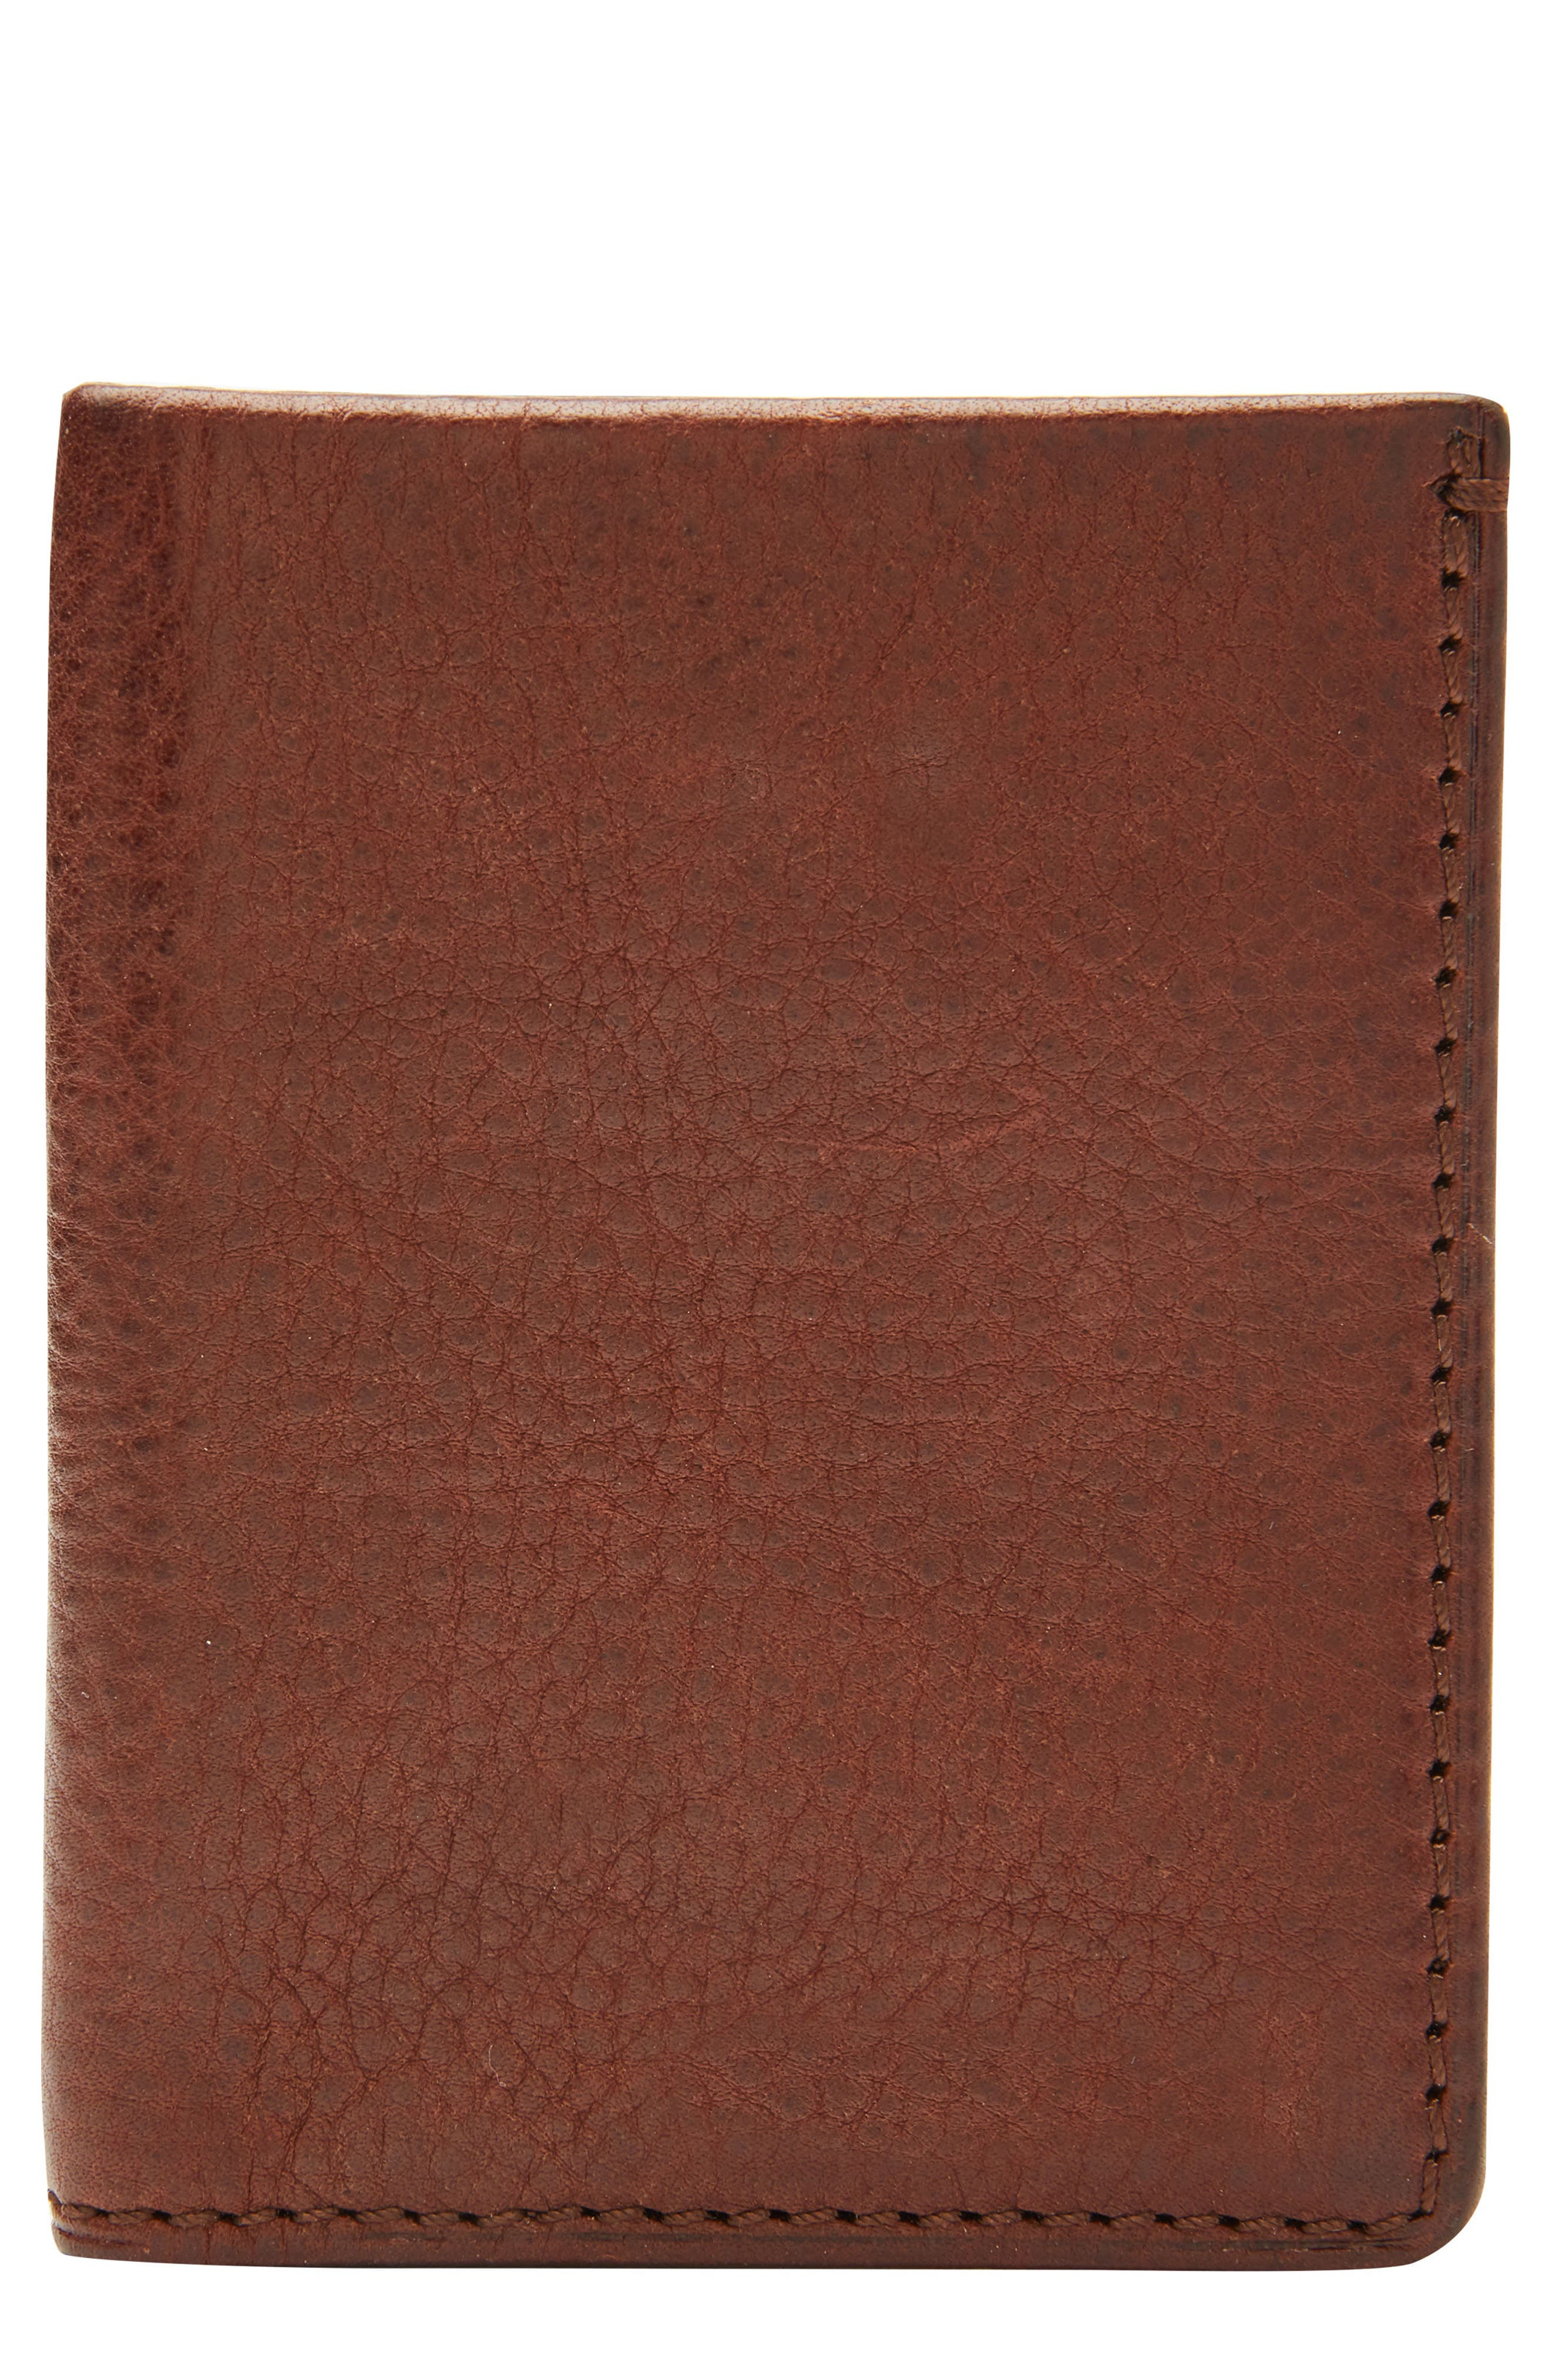 Leather with Selvedge Denim Card Case,                             Main thumbnail 1, color,                             200